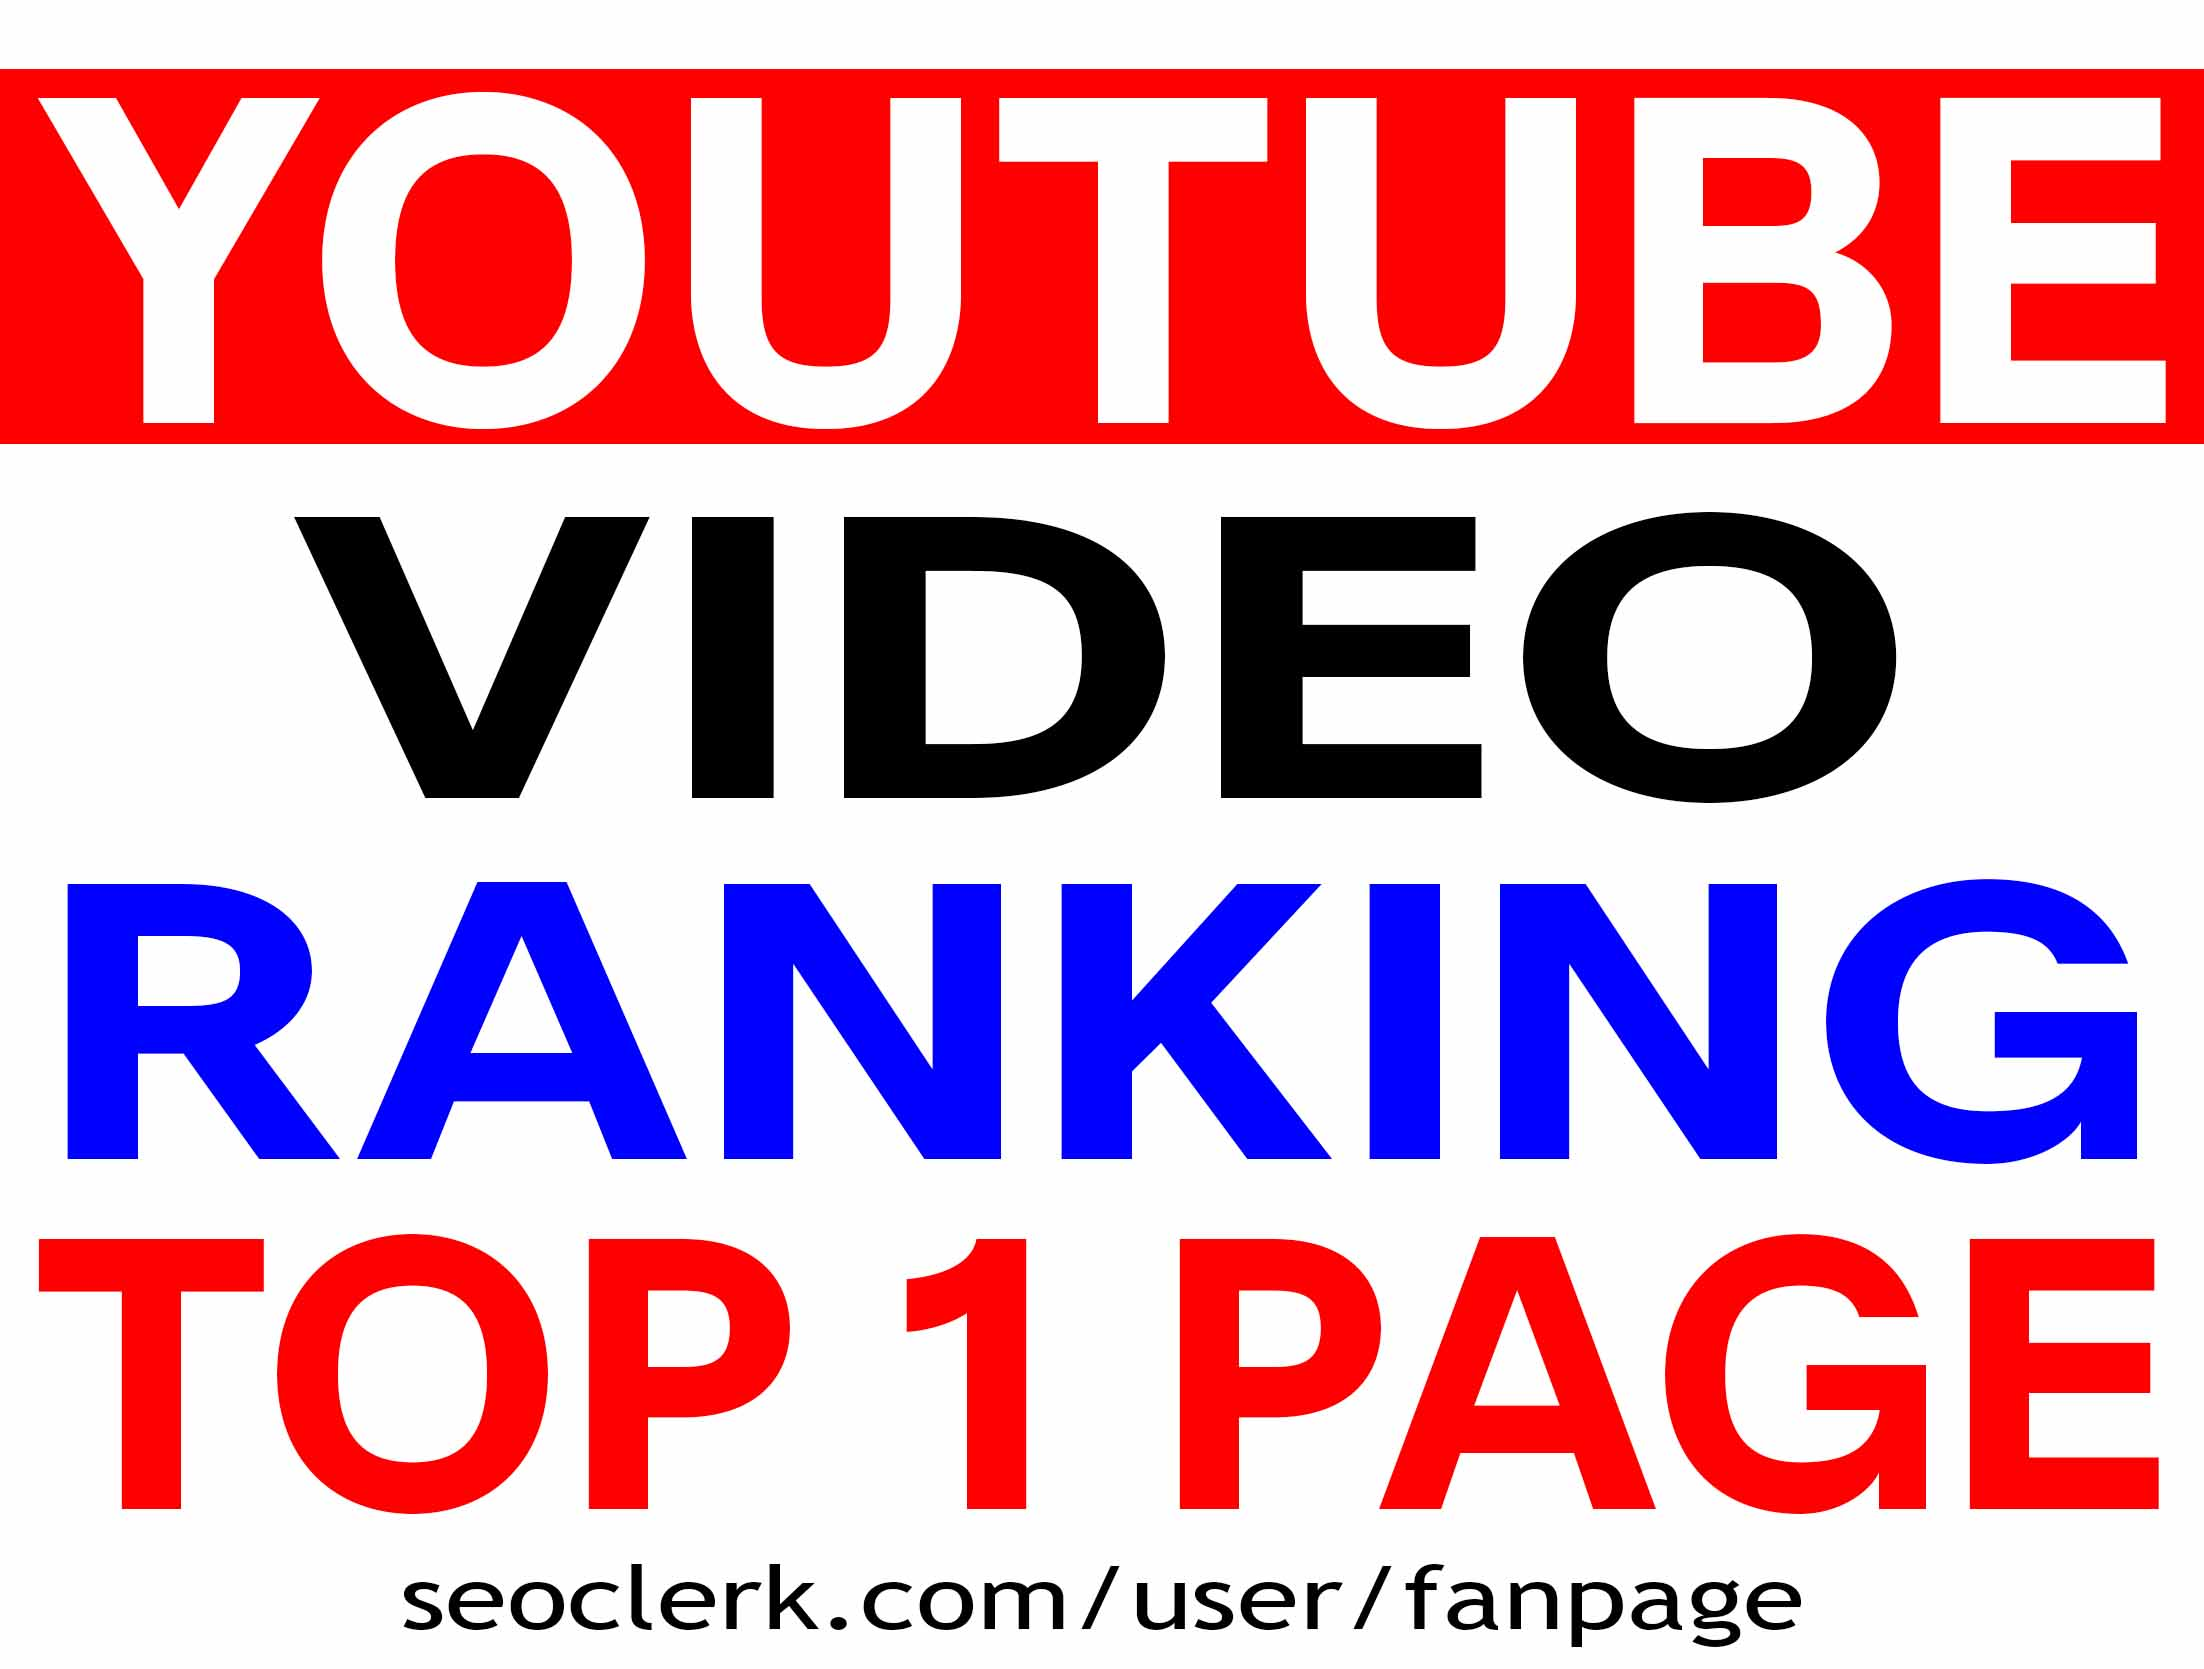 YOUTUBE VIDEO RANKING TOP 1 PAGE GUARANTEED - BEST RESULT 2020